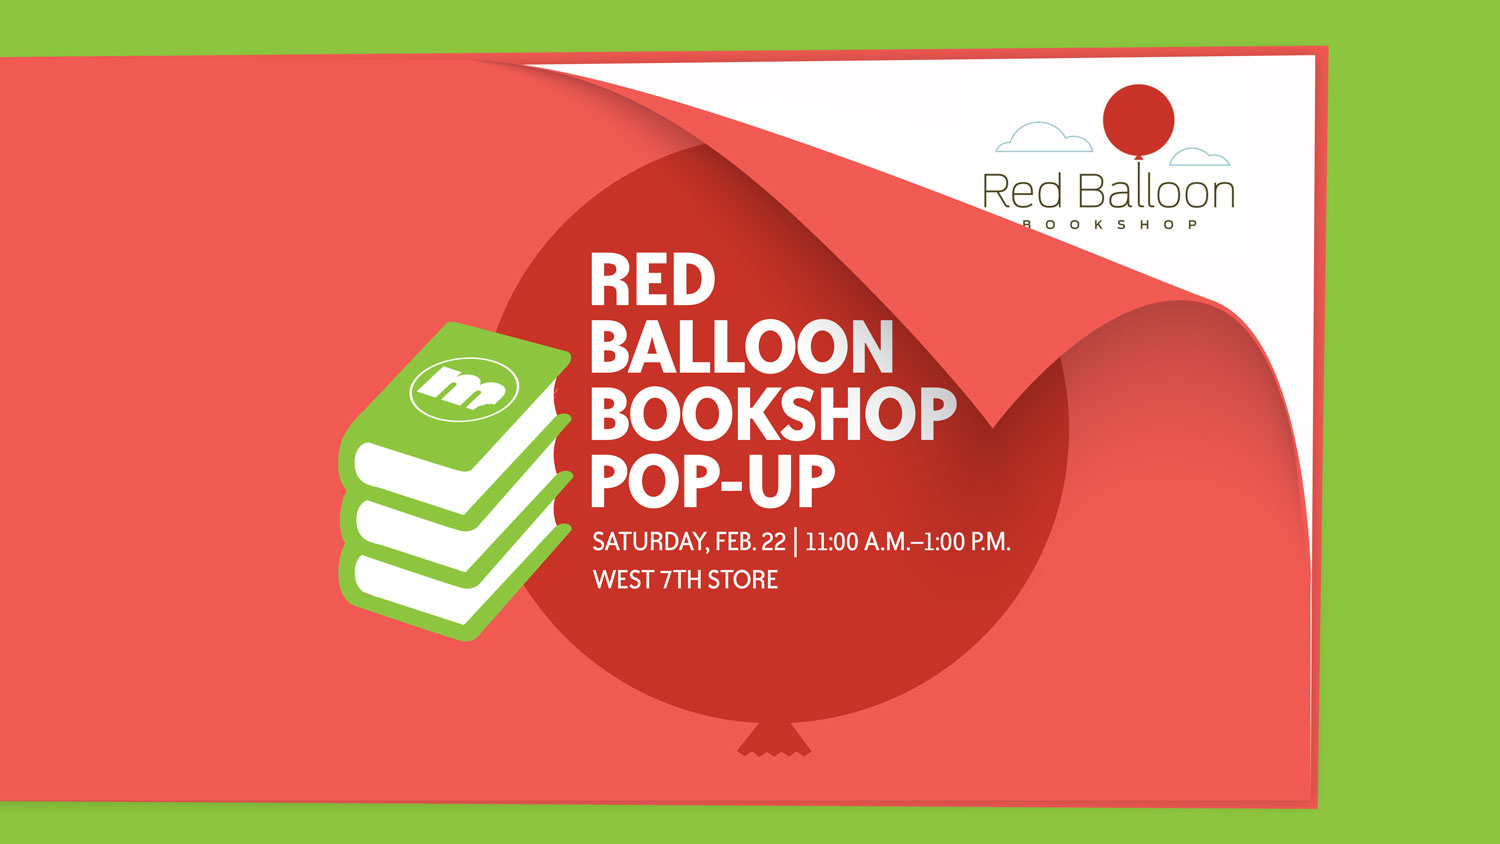 Image for Red Balloon Bookshop Pop-Up